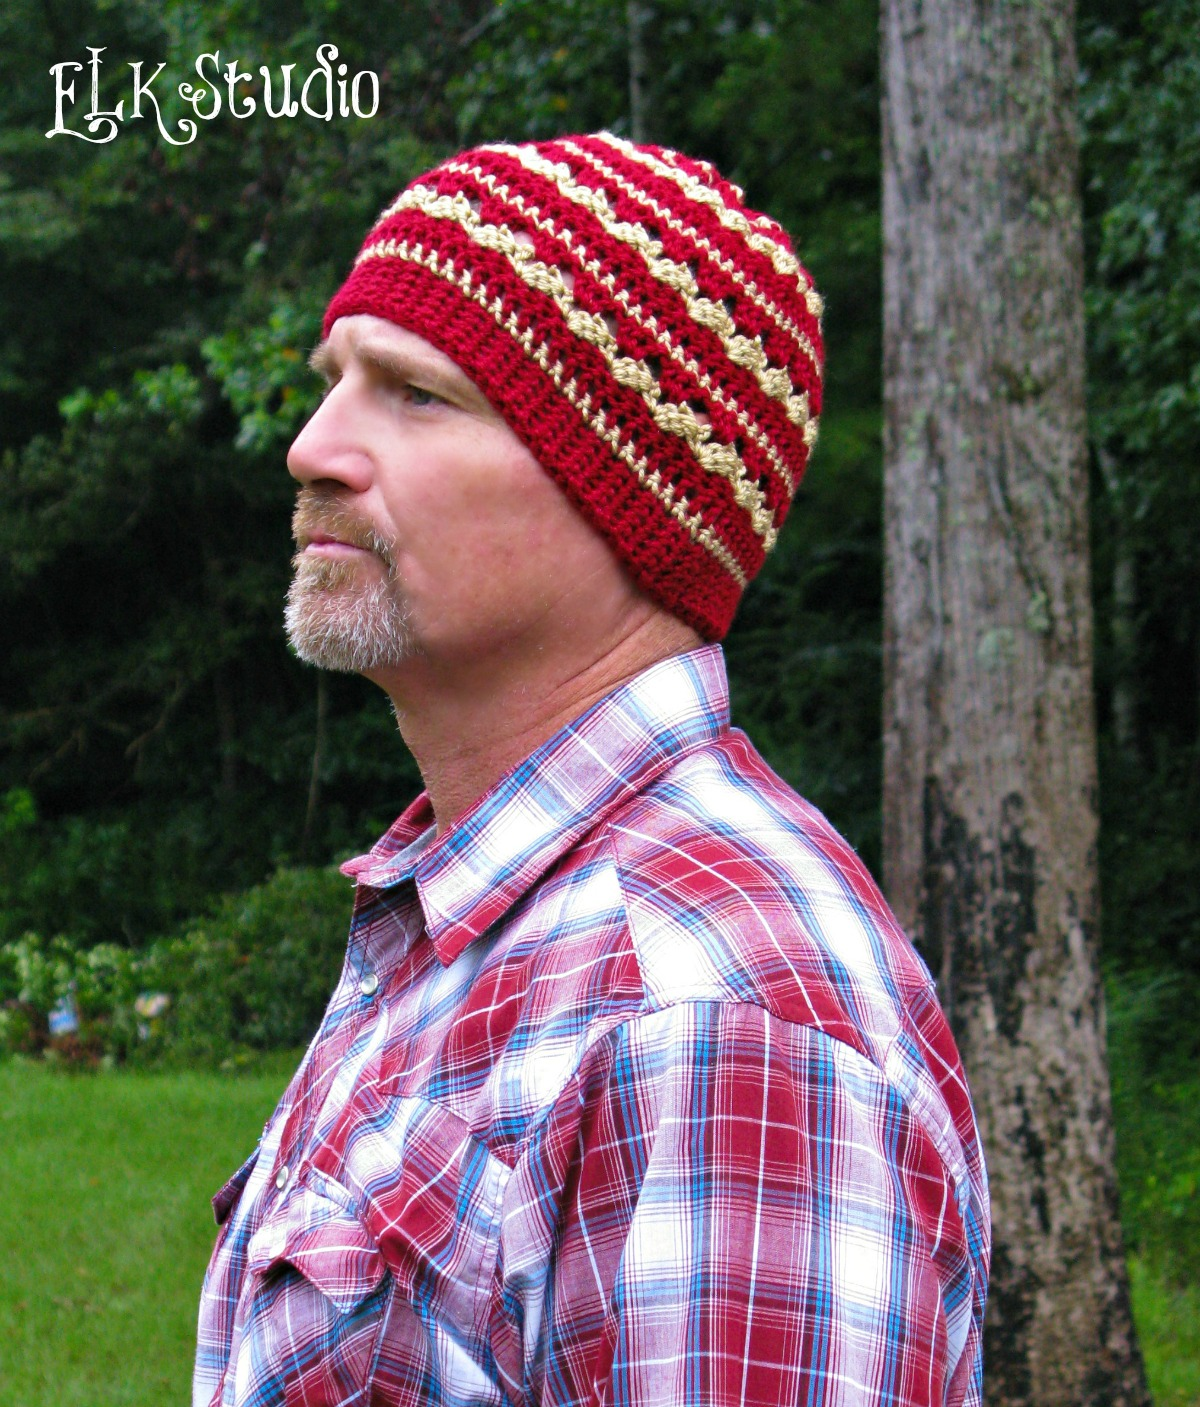 Autumn Dew - A Free Crochet Beanie hat by ELK Studio